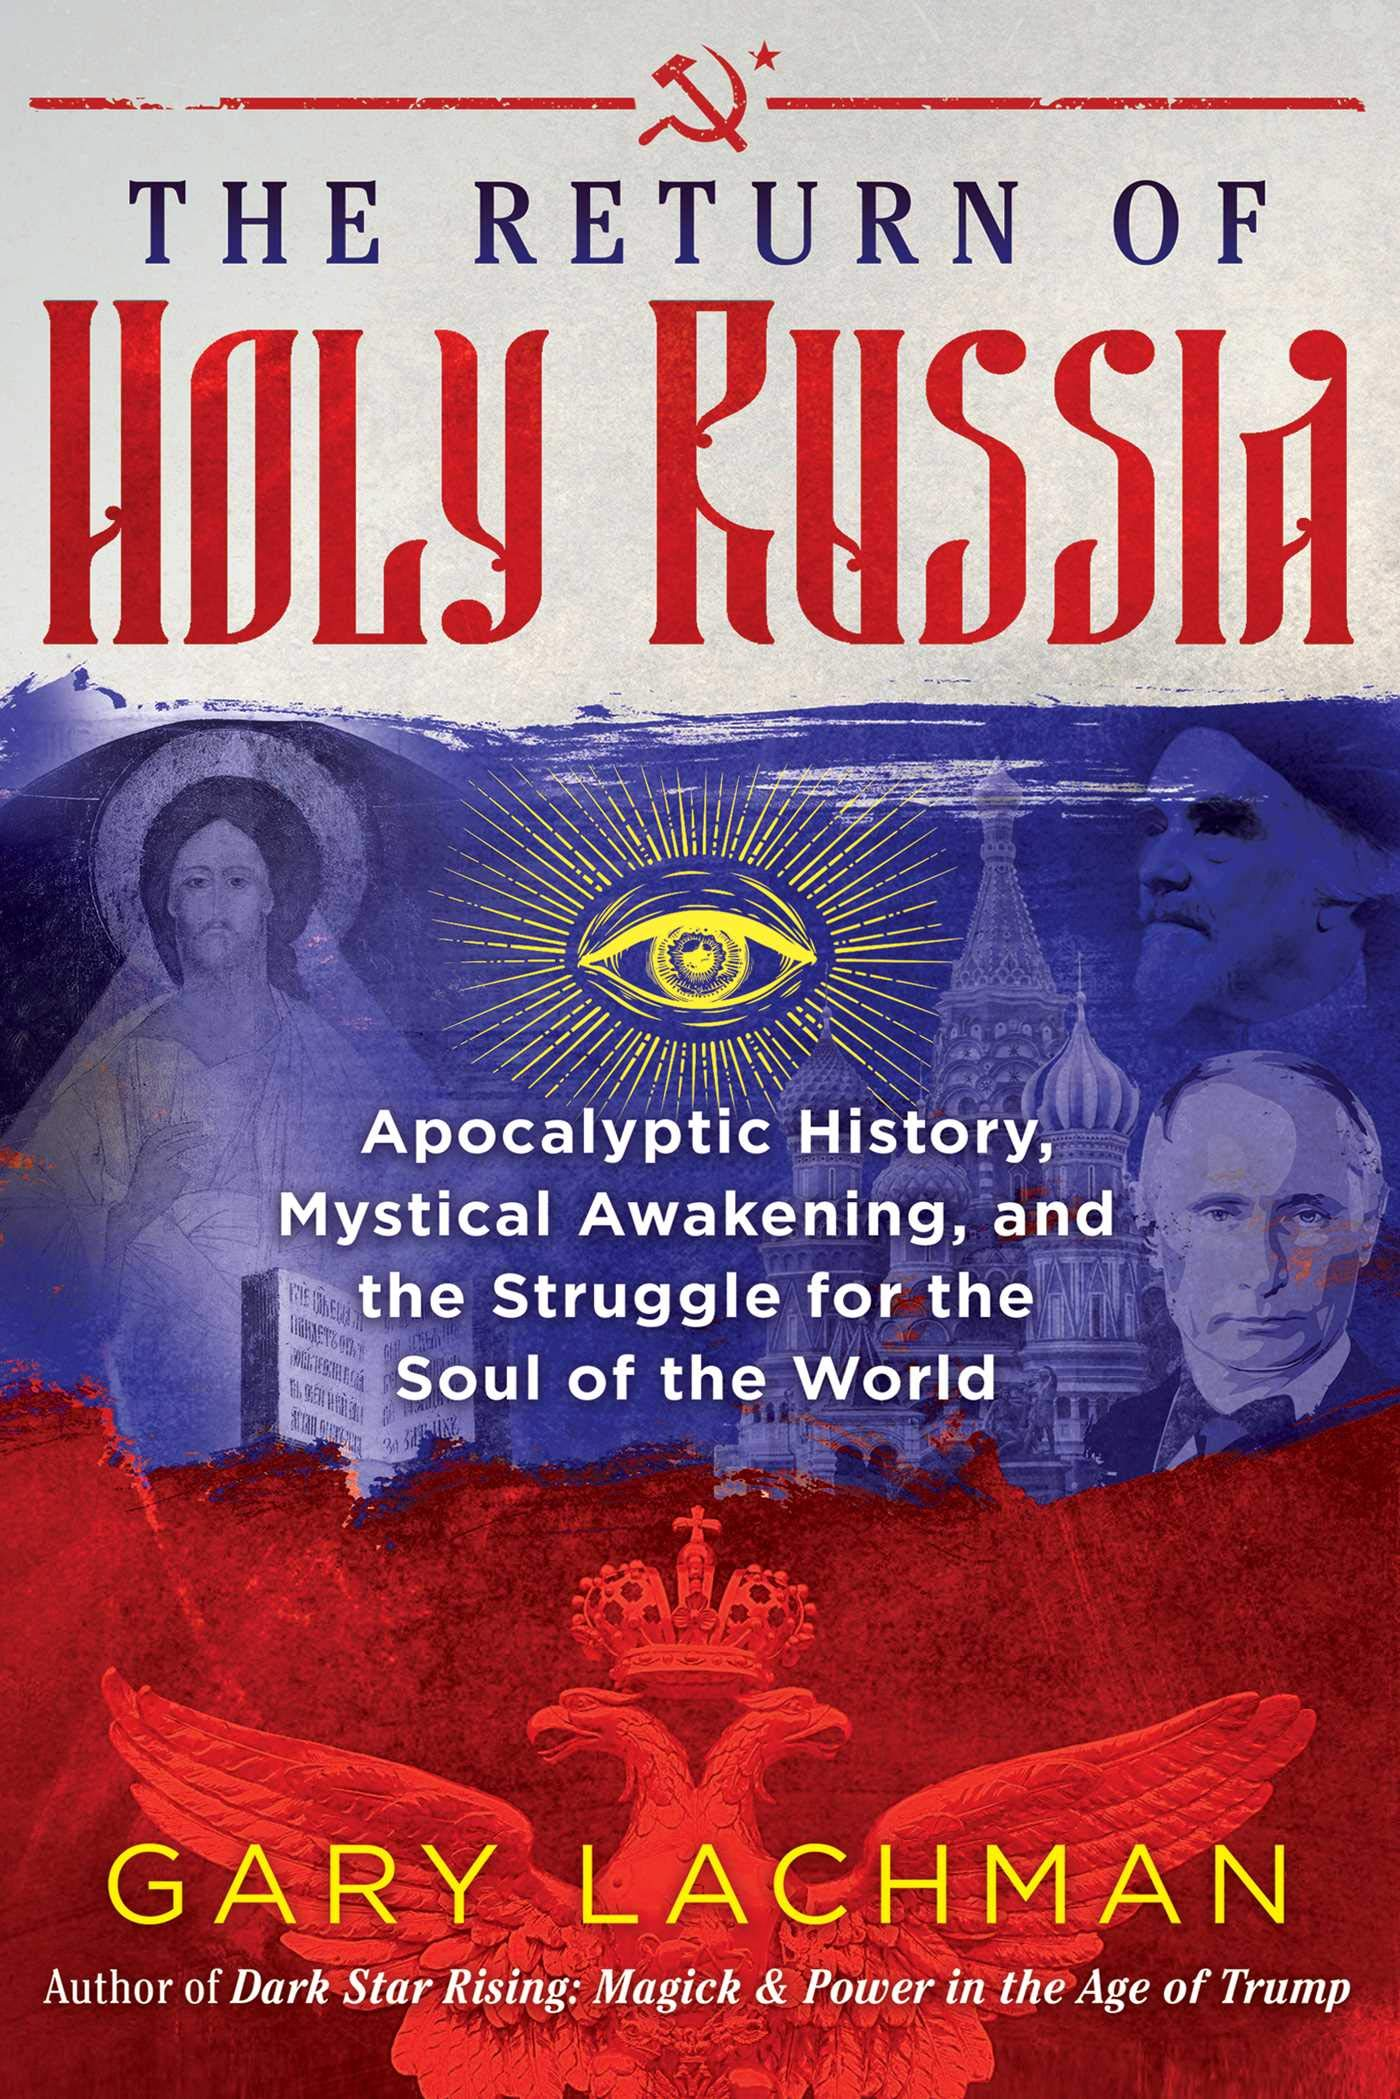 Lachman, G: Return of Holy Russia: Apocalyptic History, Mystical Awakening, and the Struggle for the Soul of the World: Amazon.es: Lachman, Gary: Libros en idiomas extranjeros